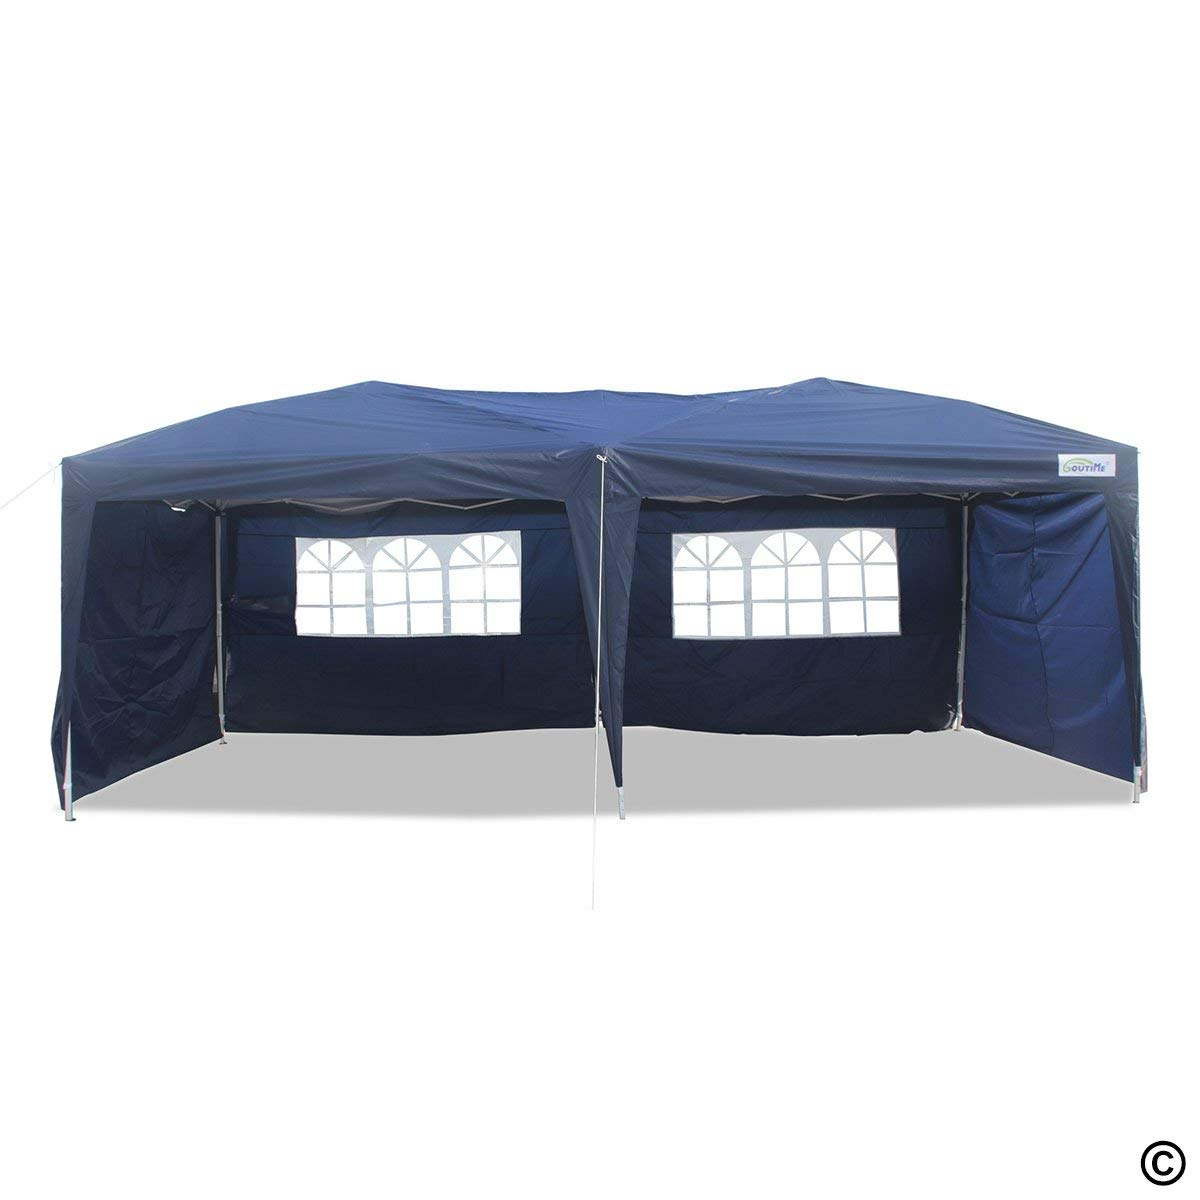 Goutime 10X20 Feet Easy Pop Up Canopy Tent with 4 Removable Sidewalls (10ft) and Wheeled Bag for Outdoor Events Navy Blue